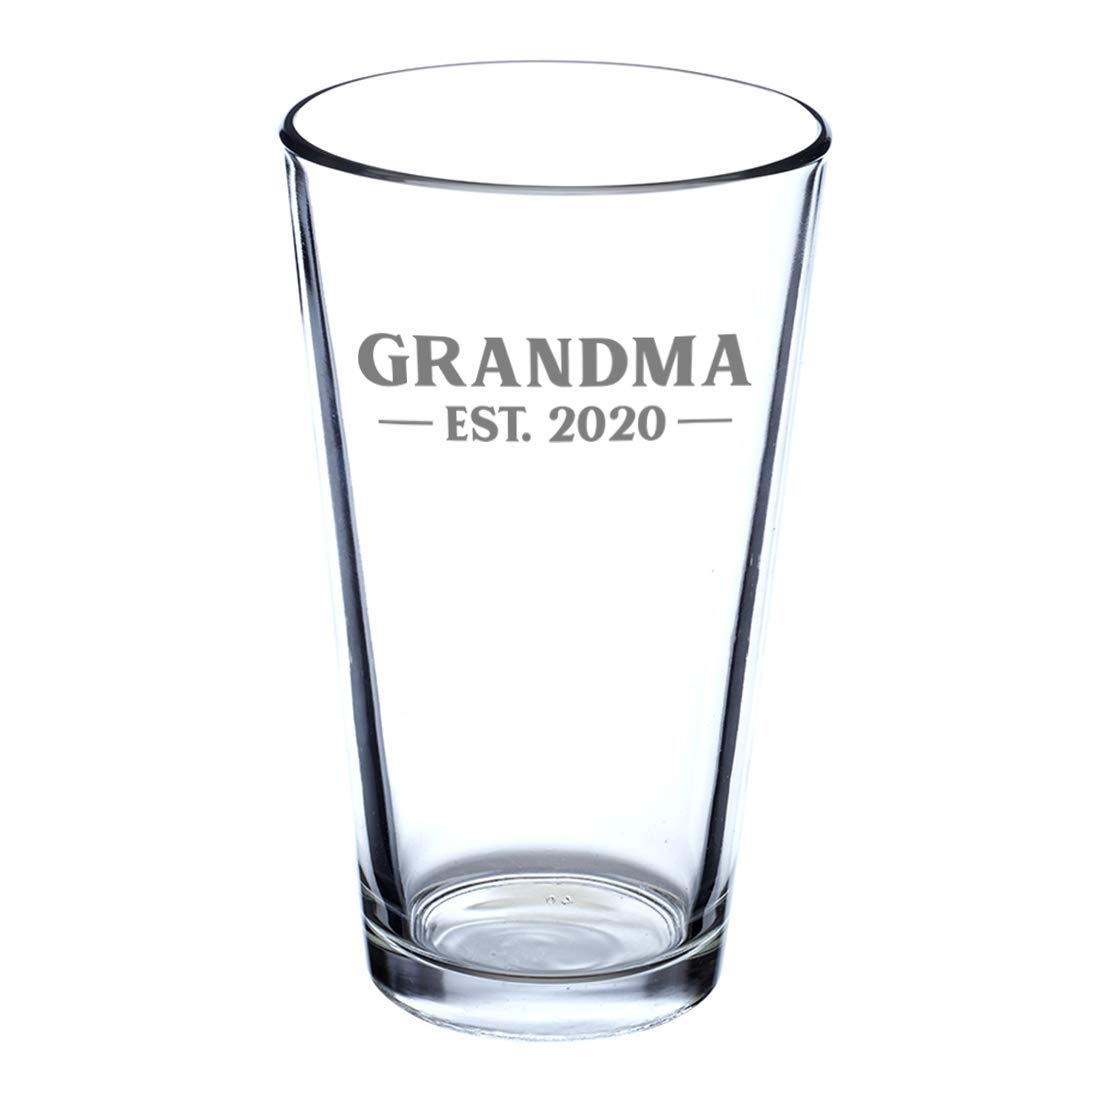 New Grandmother Pint Glass Gift for Beer Drinking First Time Grandparents Bold 16 oz Glasses Grandma Est 2020 Custom for Kay